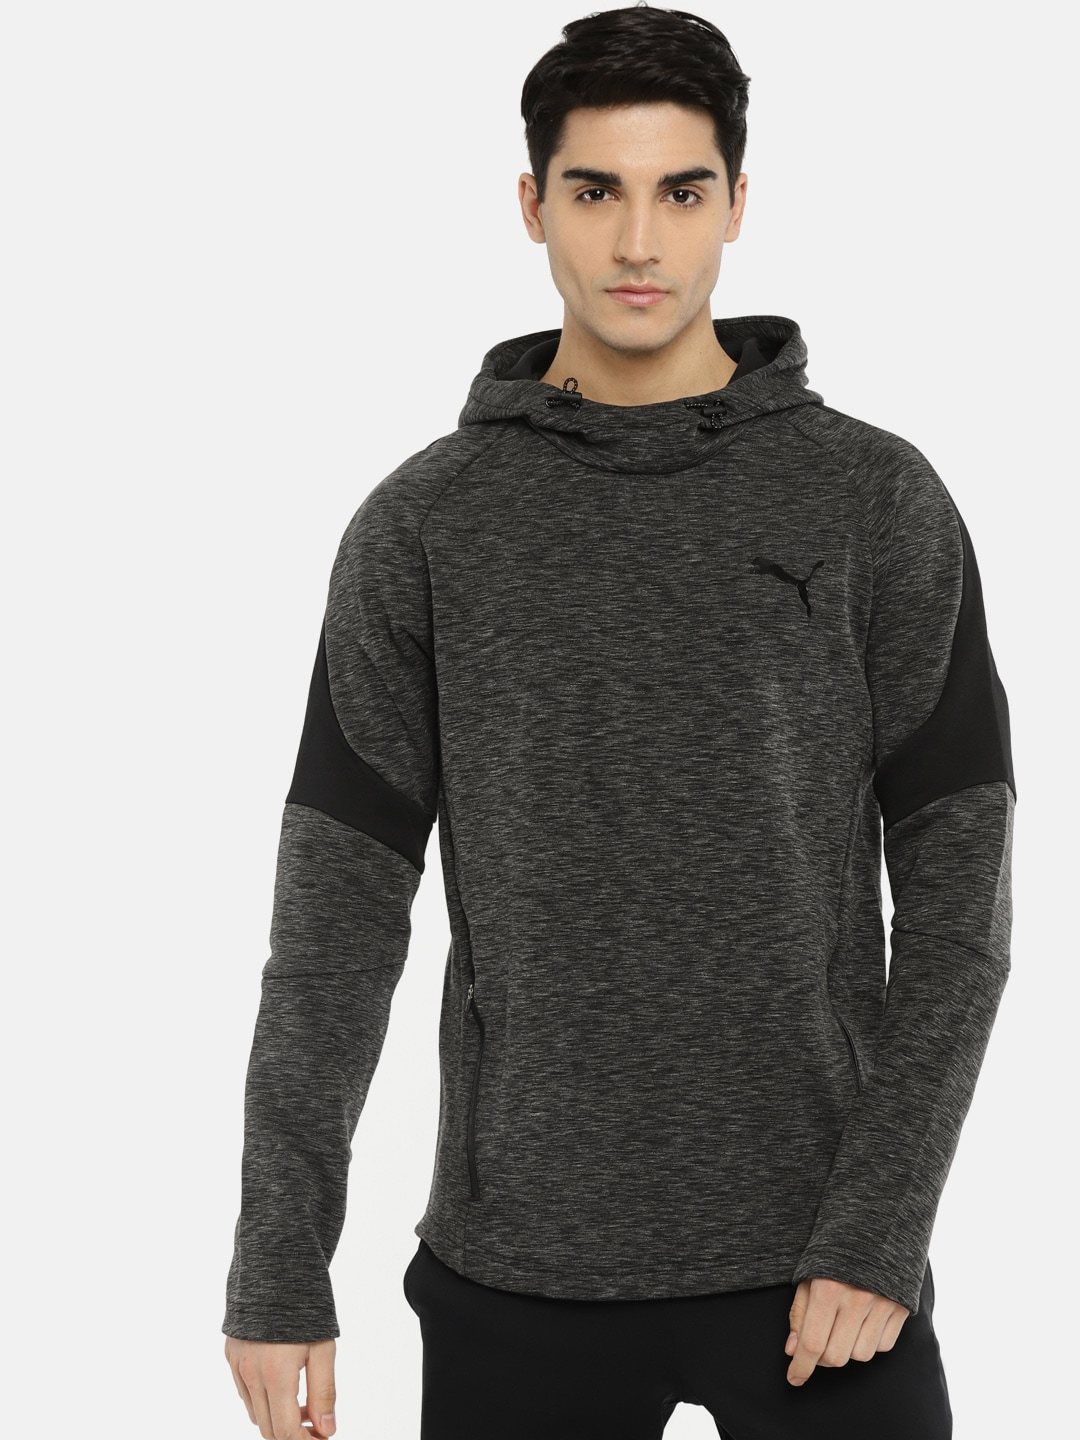 Puma Sweatshirt Buy Sweatshirts For Men Women In India Jaket Hoodie Jumper Abslt